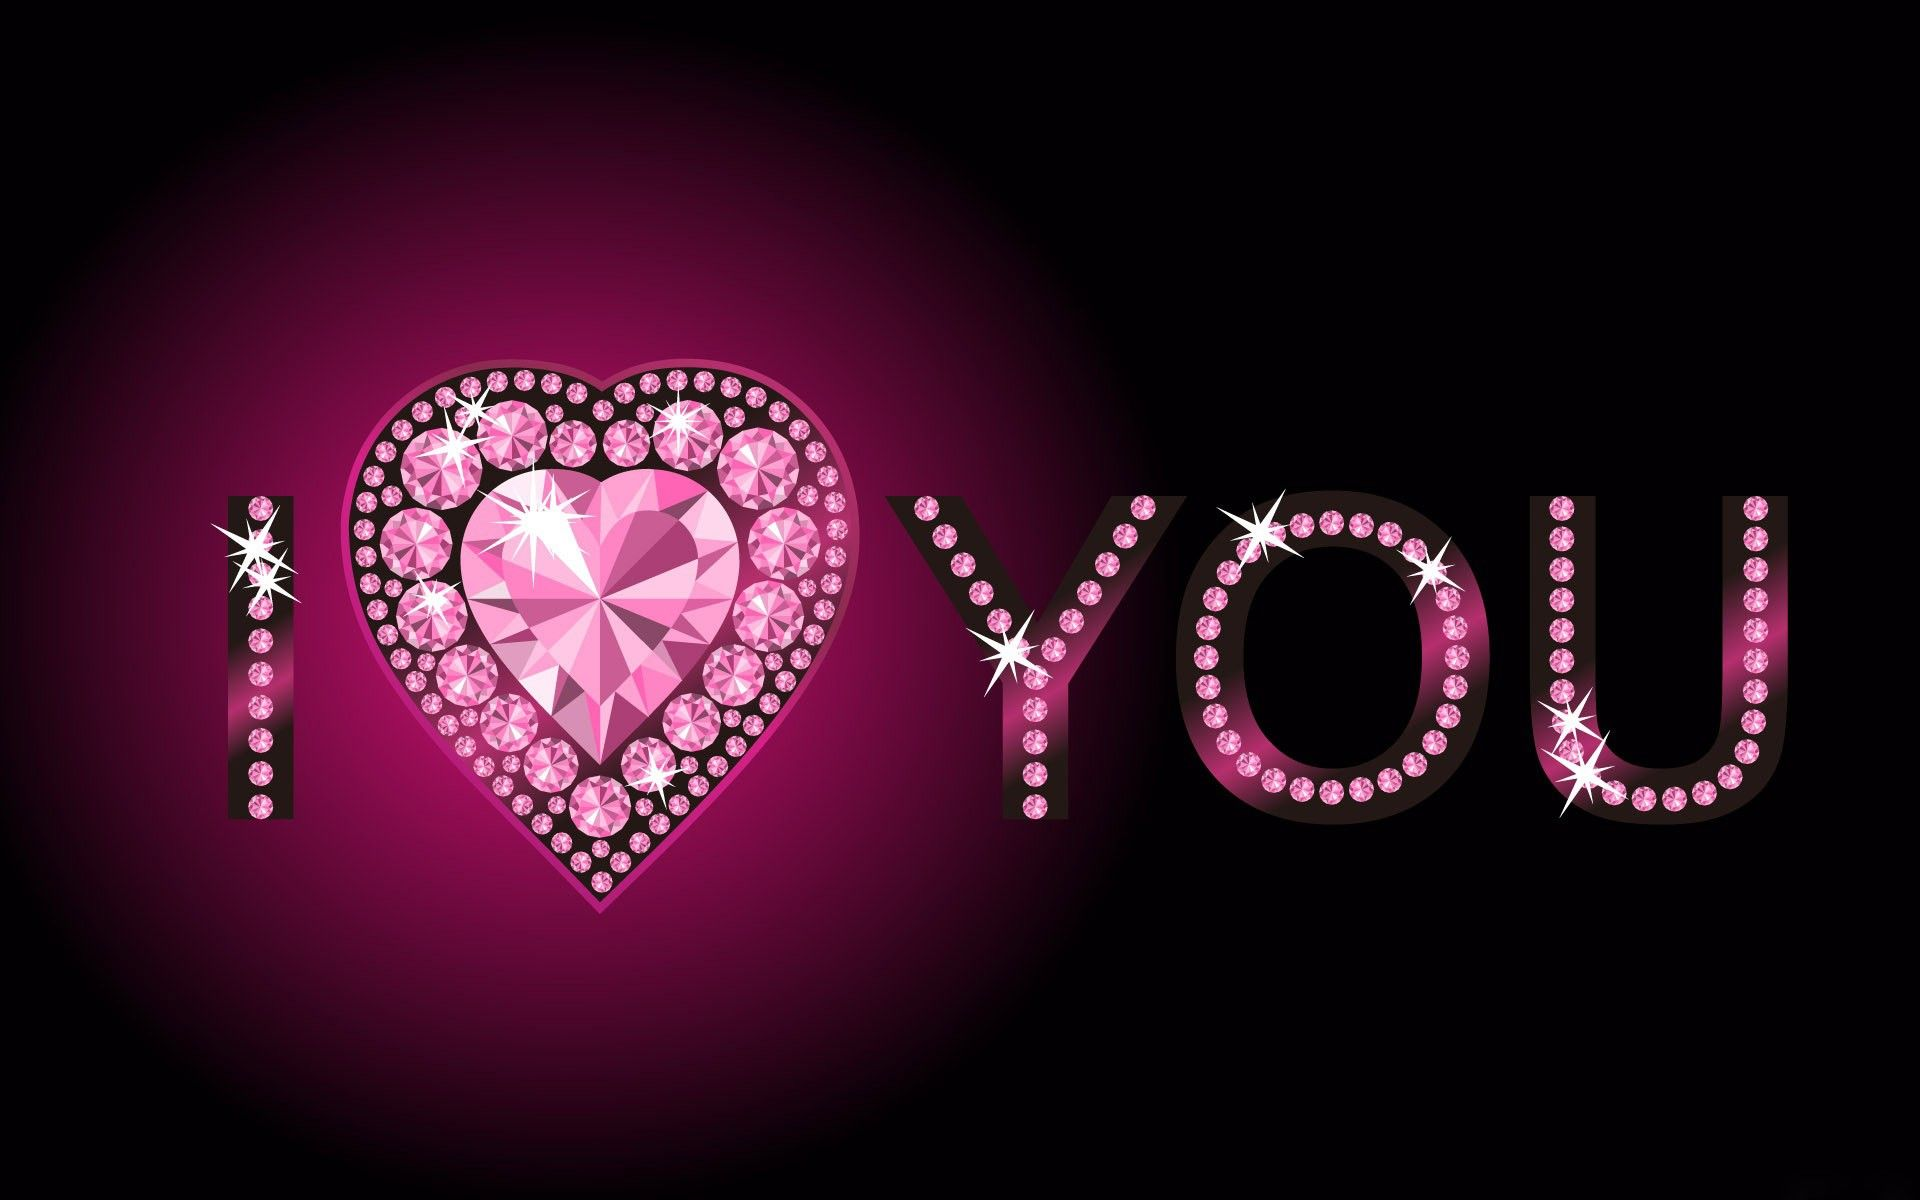 I Love U Wallpapers Computer HD